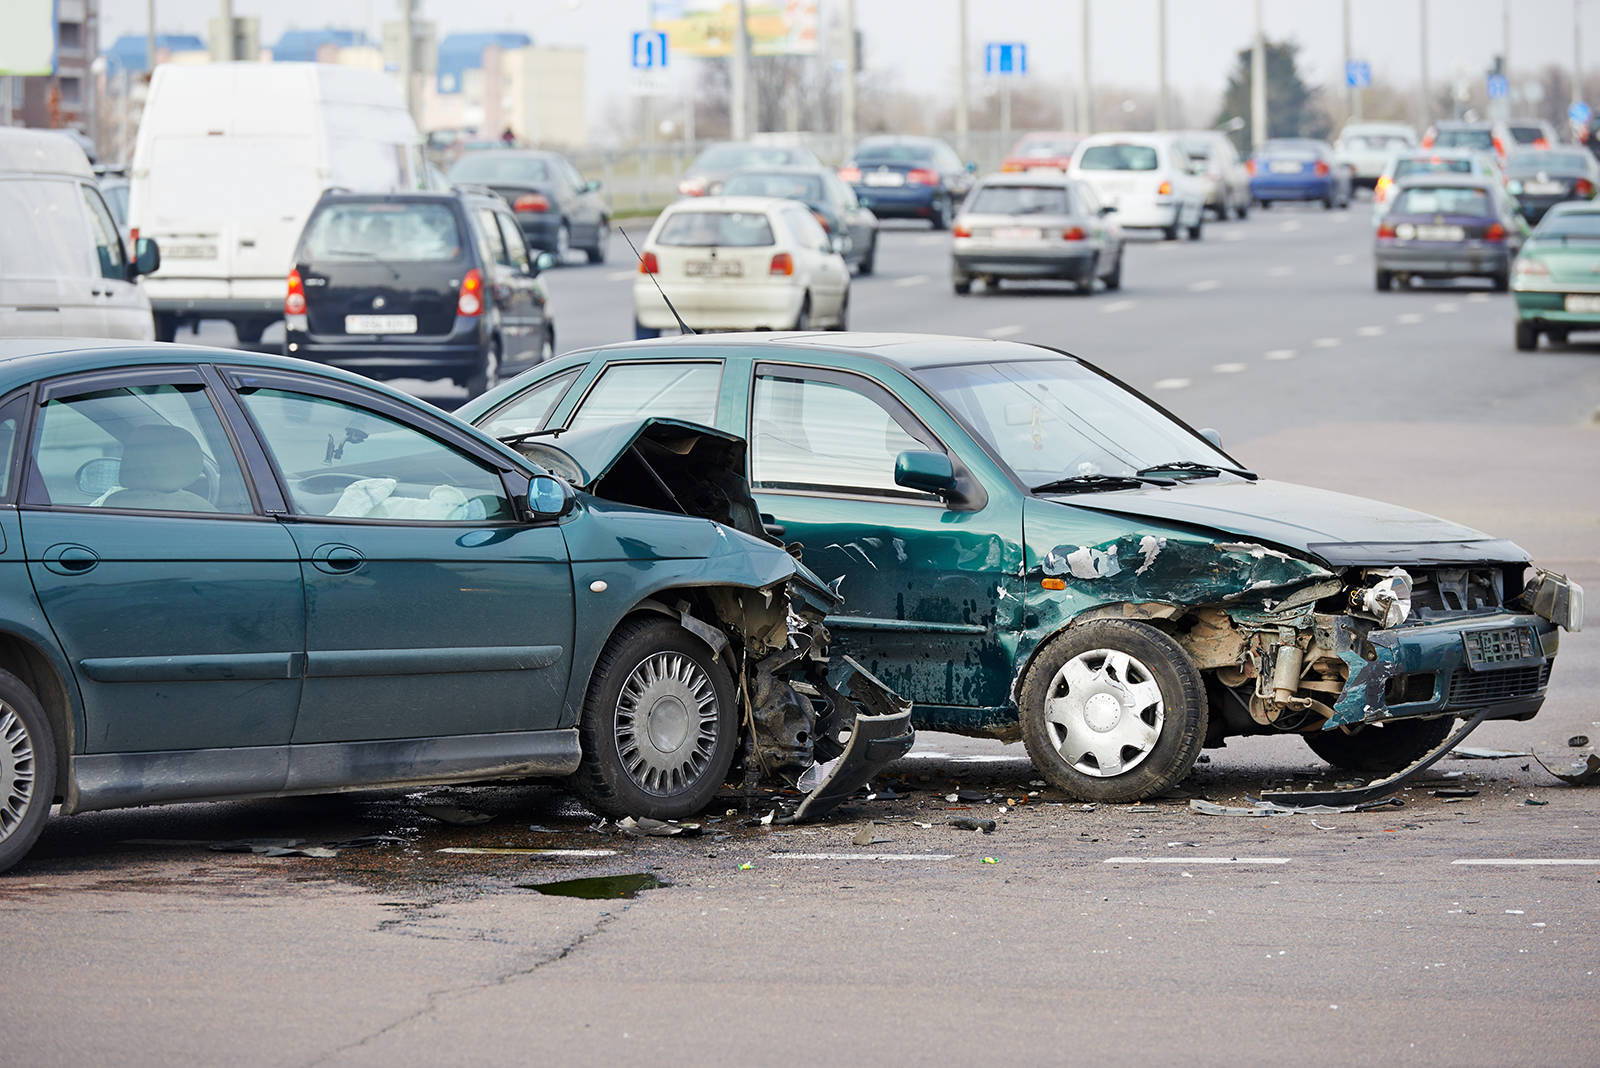 Do you know what to do in the event of a collision? MyTrafficMan shares 10 essential steps.